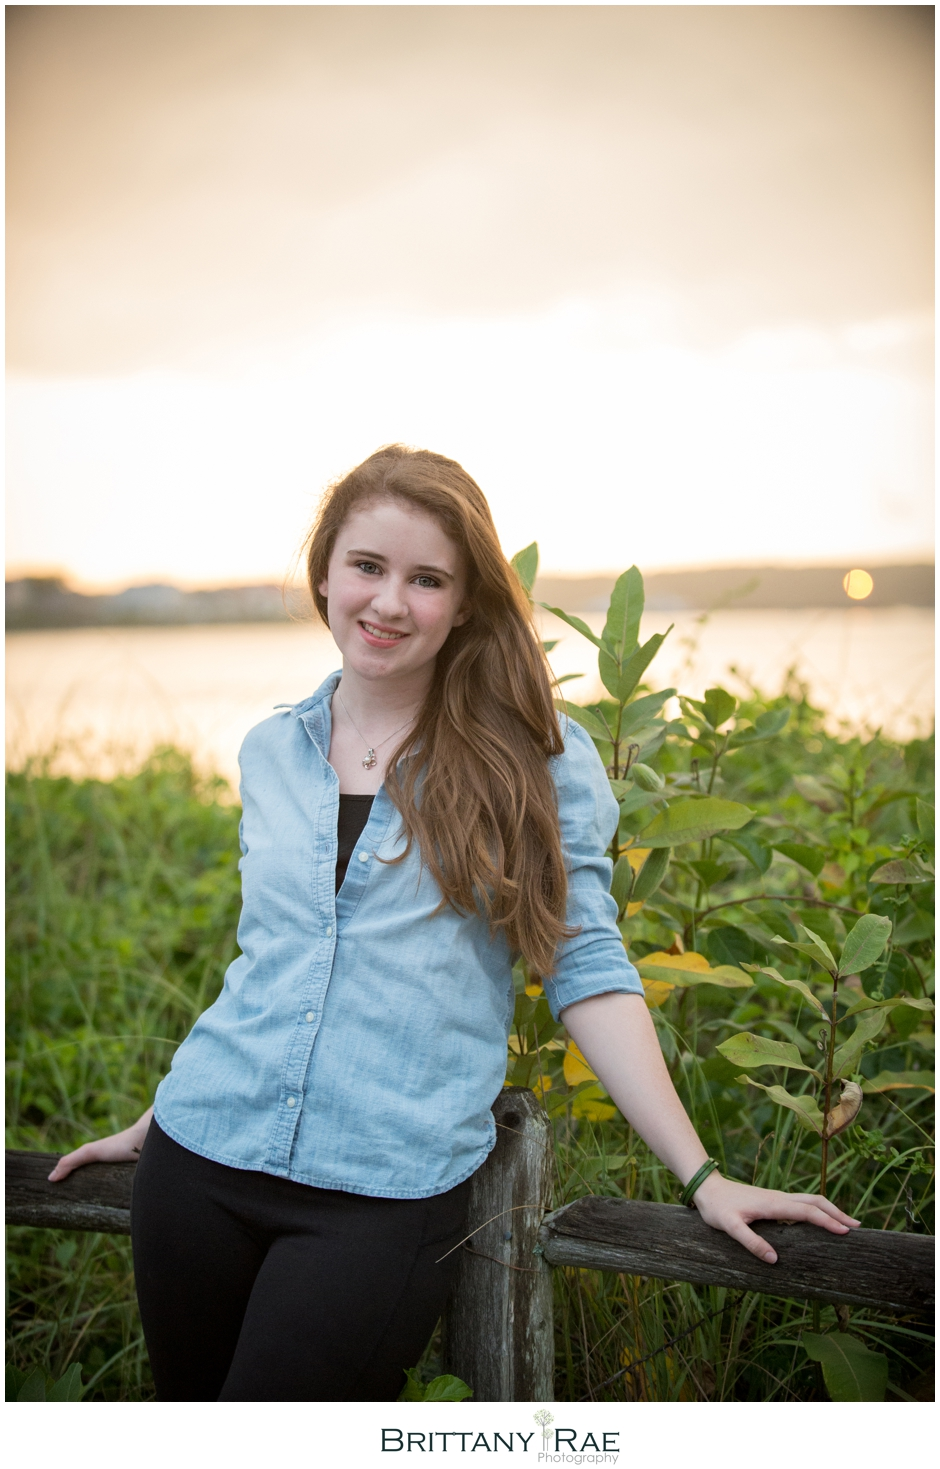 Maine High School Senior Portrait Photographer - Brittany Rae Photography